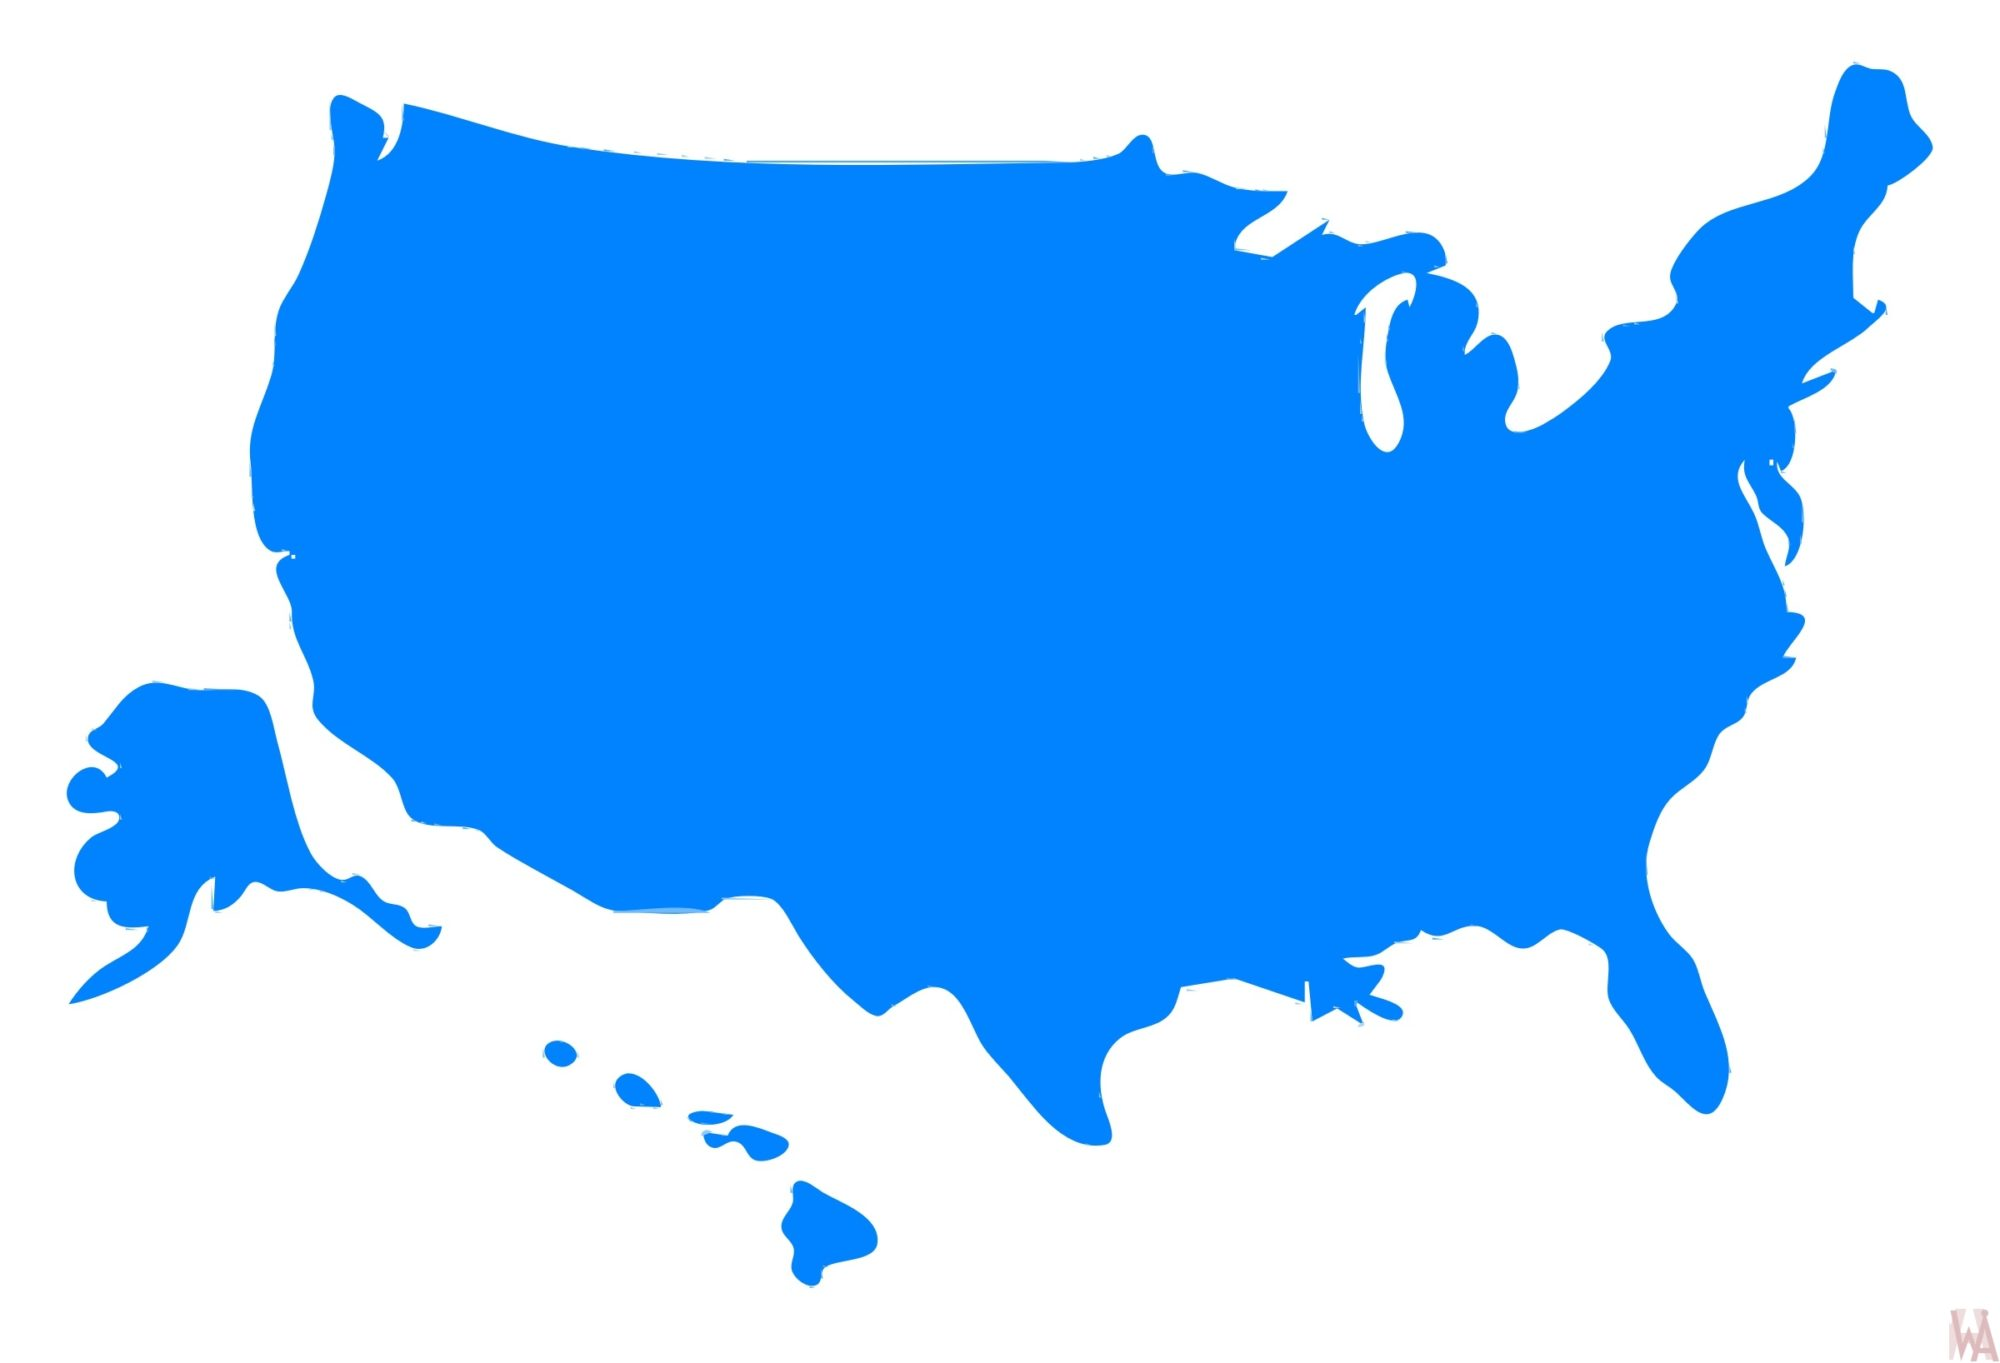 Clipart map of USA   WhatsAnswer on vermont clipart, missouri clipart, under the sea clipart, wisconsin clipart, california clipart, new mexico clipart, globe clipart, pennsylvania clipart, south carolina clipart, us states clipart, umbrella clipart, fractions clipart, utah clipart, search clipart, dinosaurs clipart, virginia clipart, bike clipart, new york clipart, north america clipart, georgia clipart,